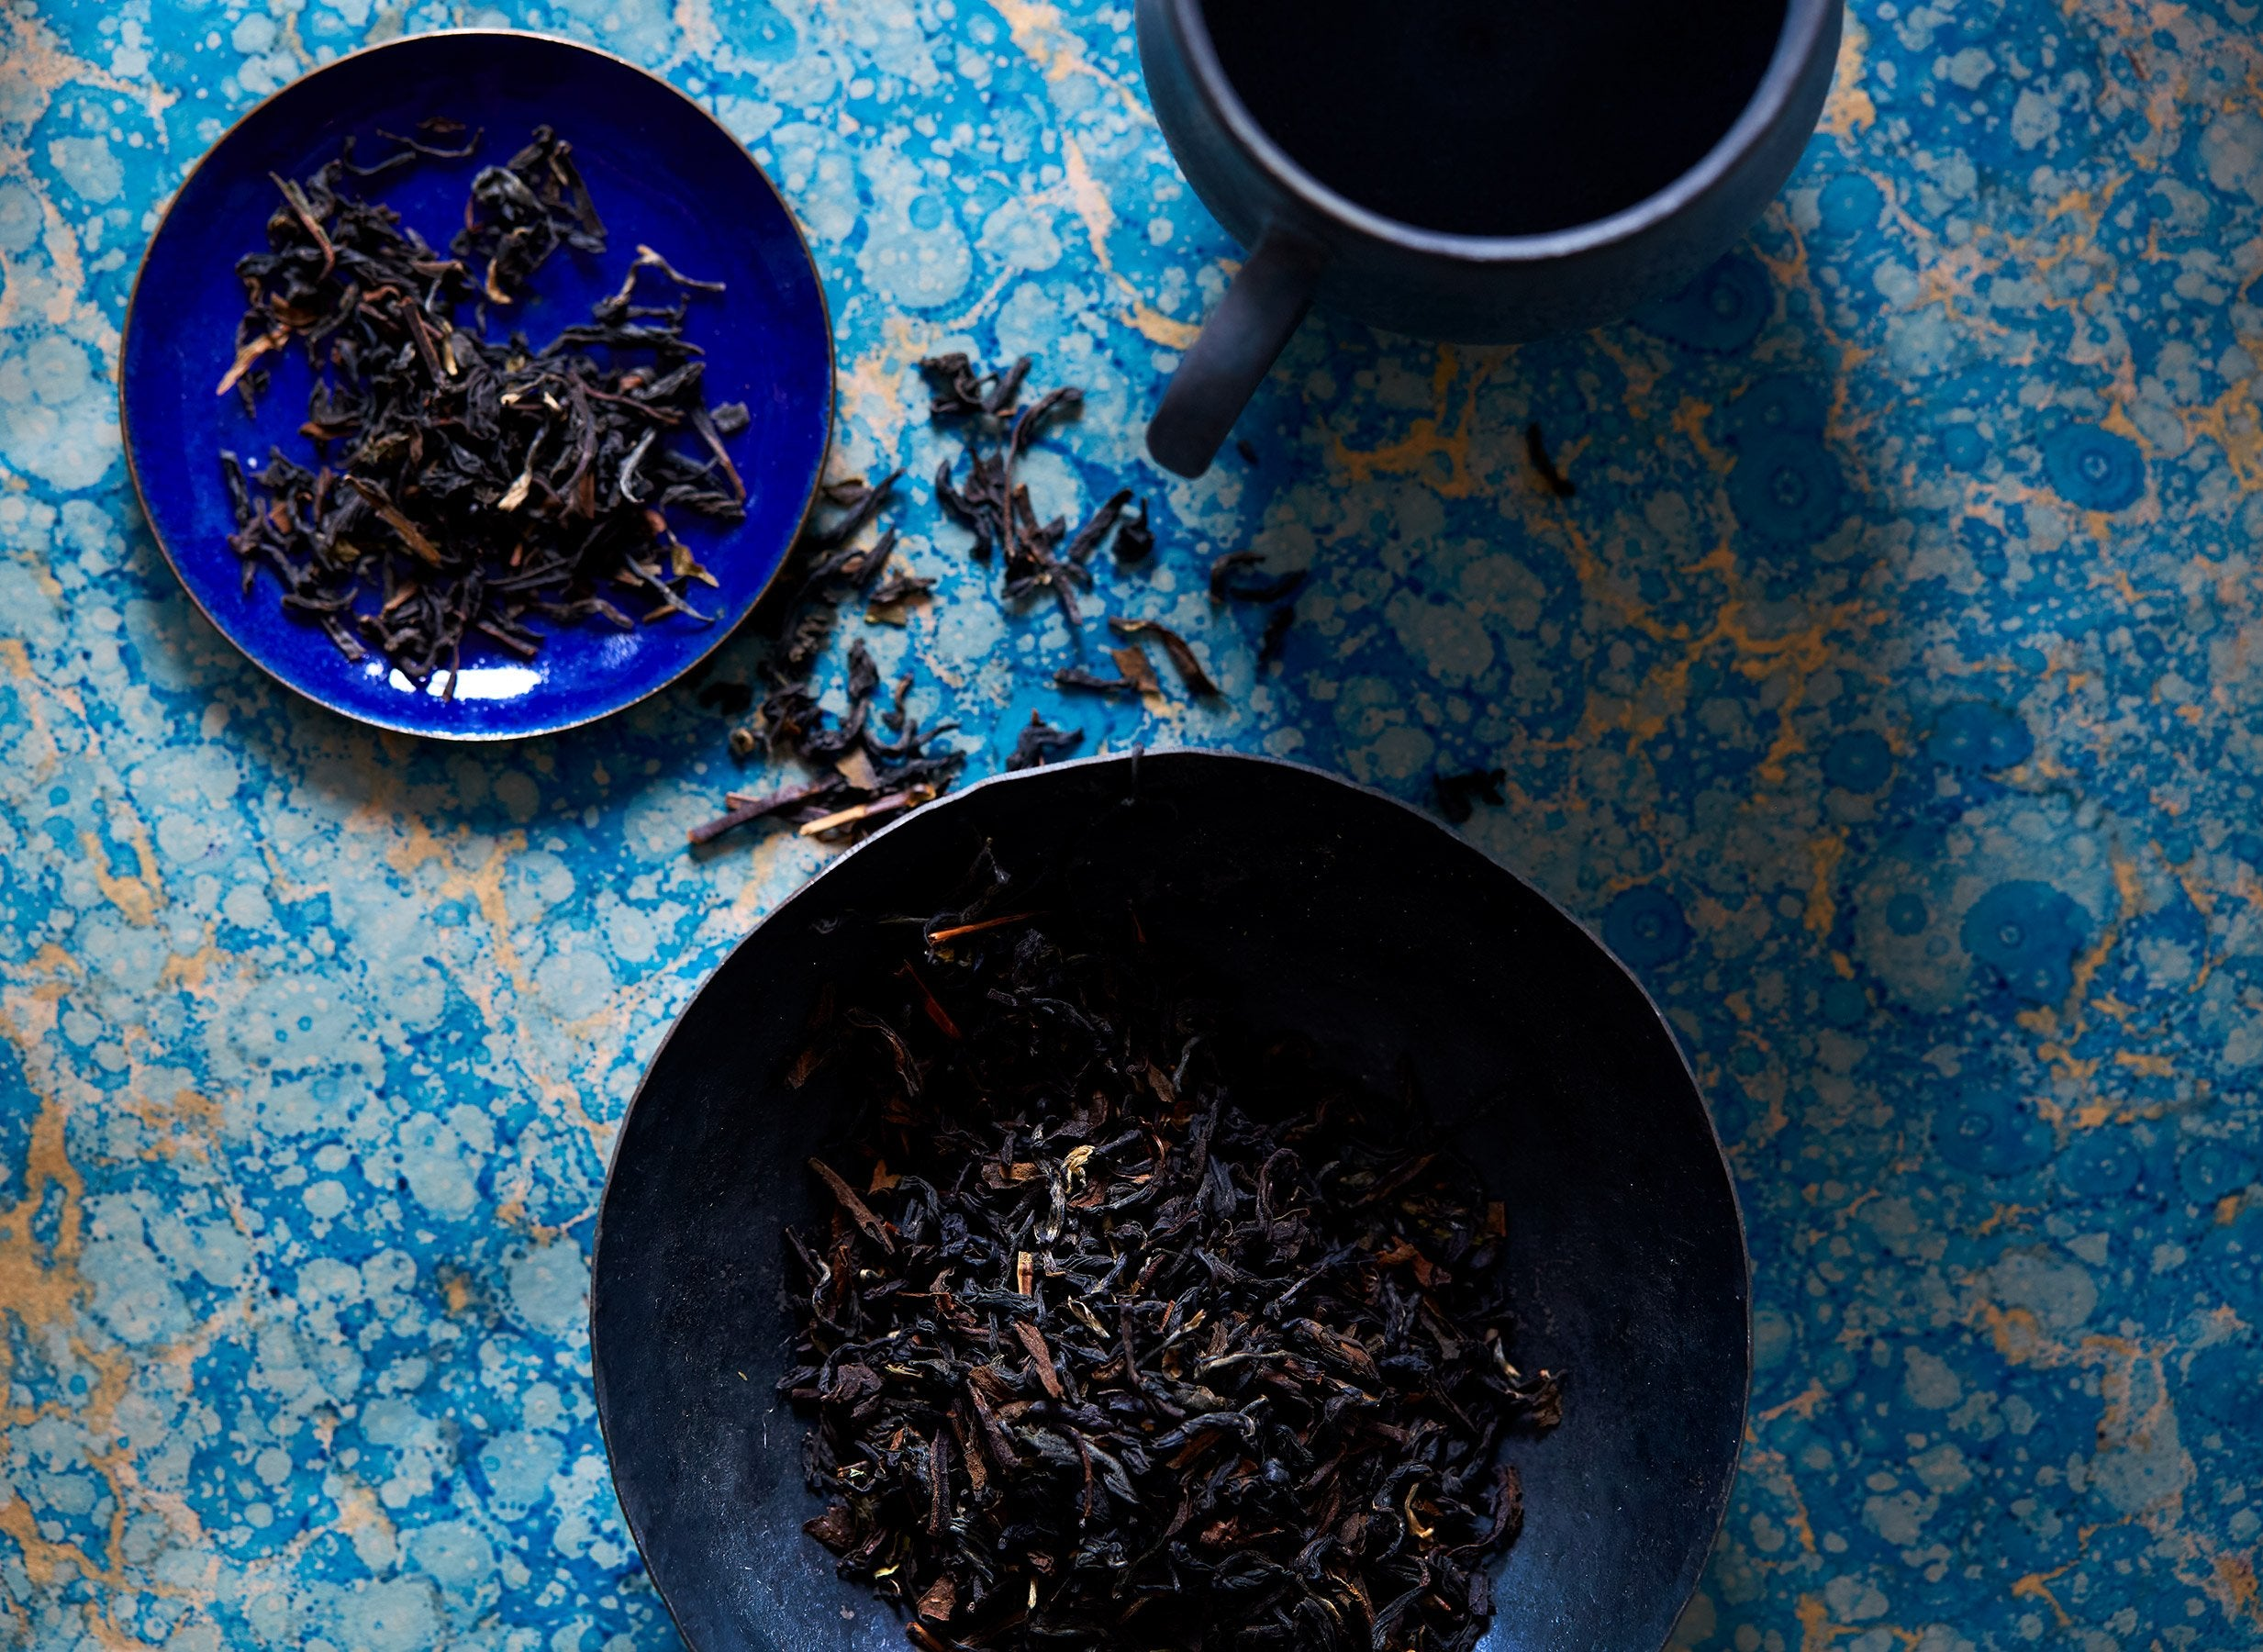 Discover organic black tea by BELLOCQ. Elevate the everyday with our premium loose leaf black teas like lapsang souchong and keemun.